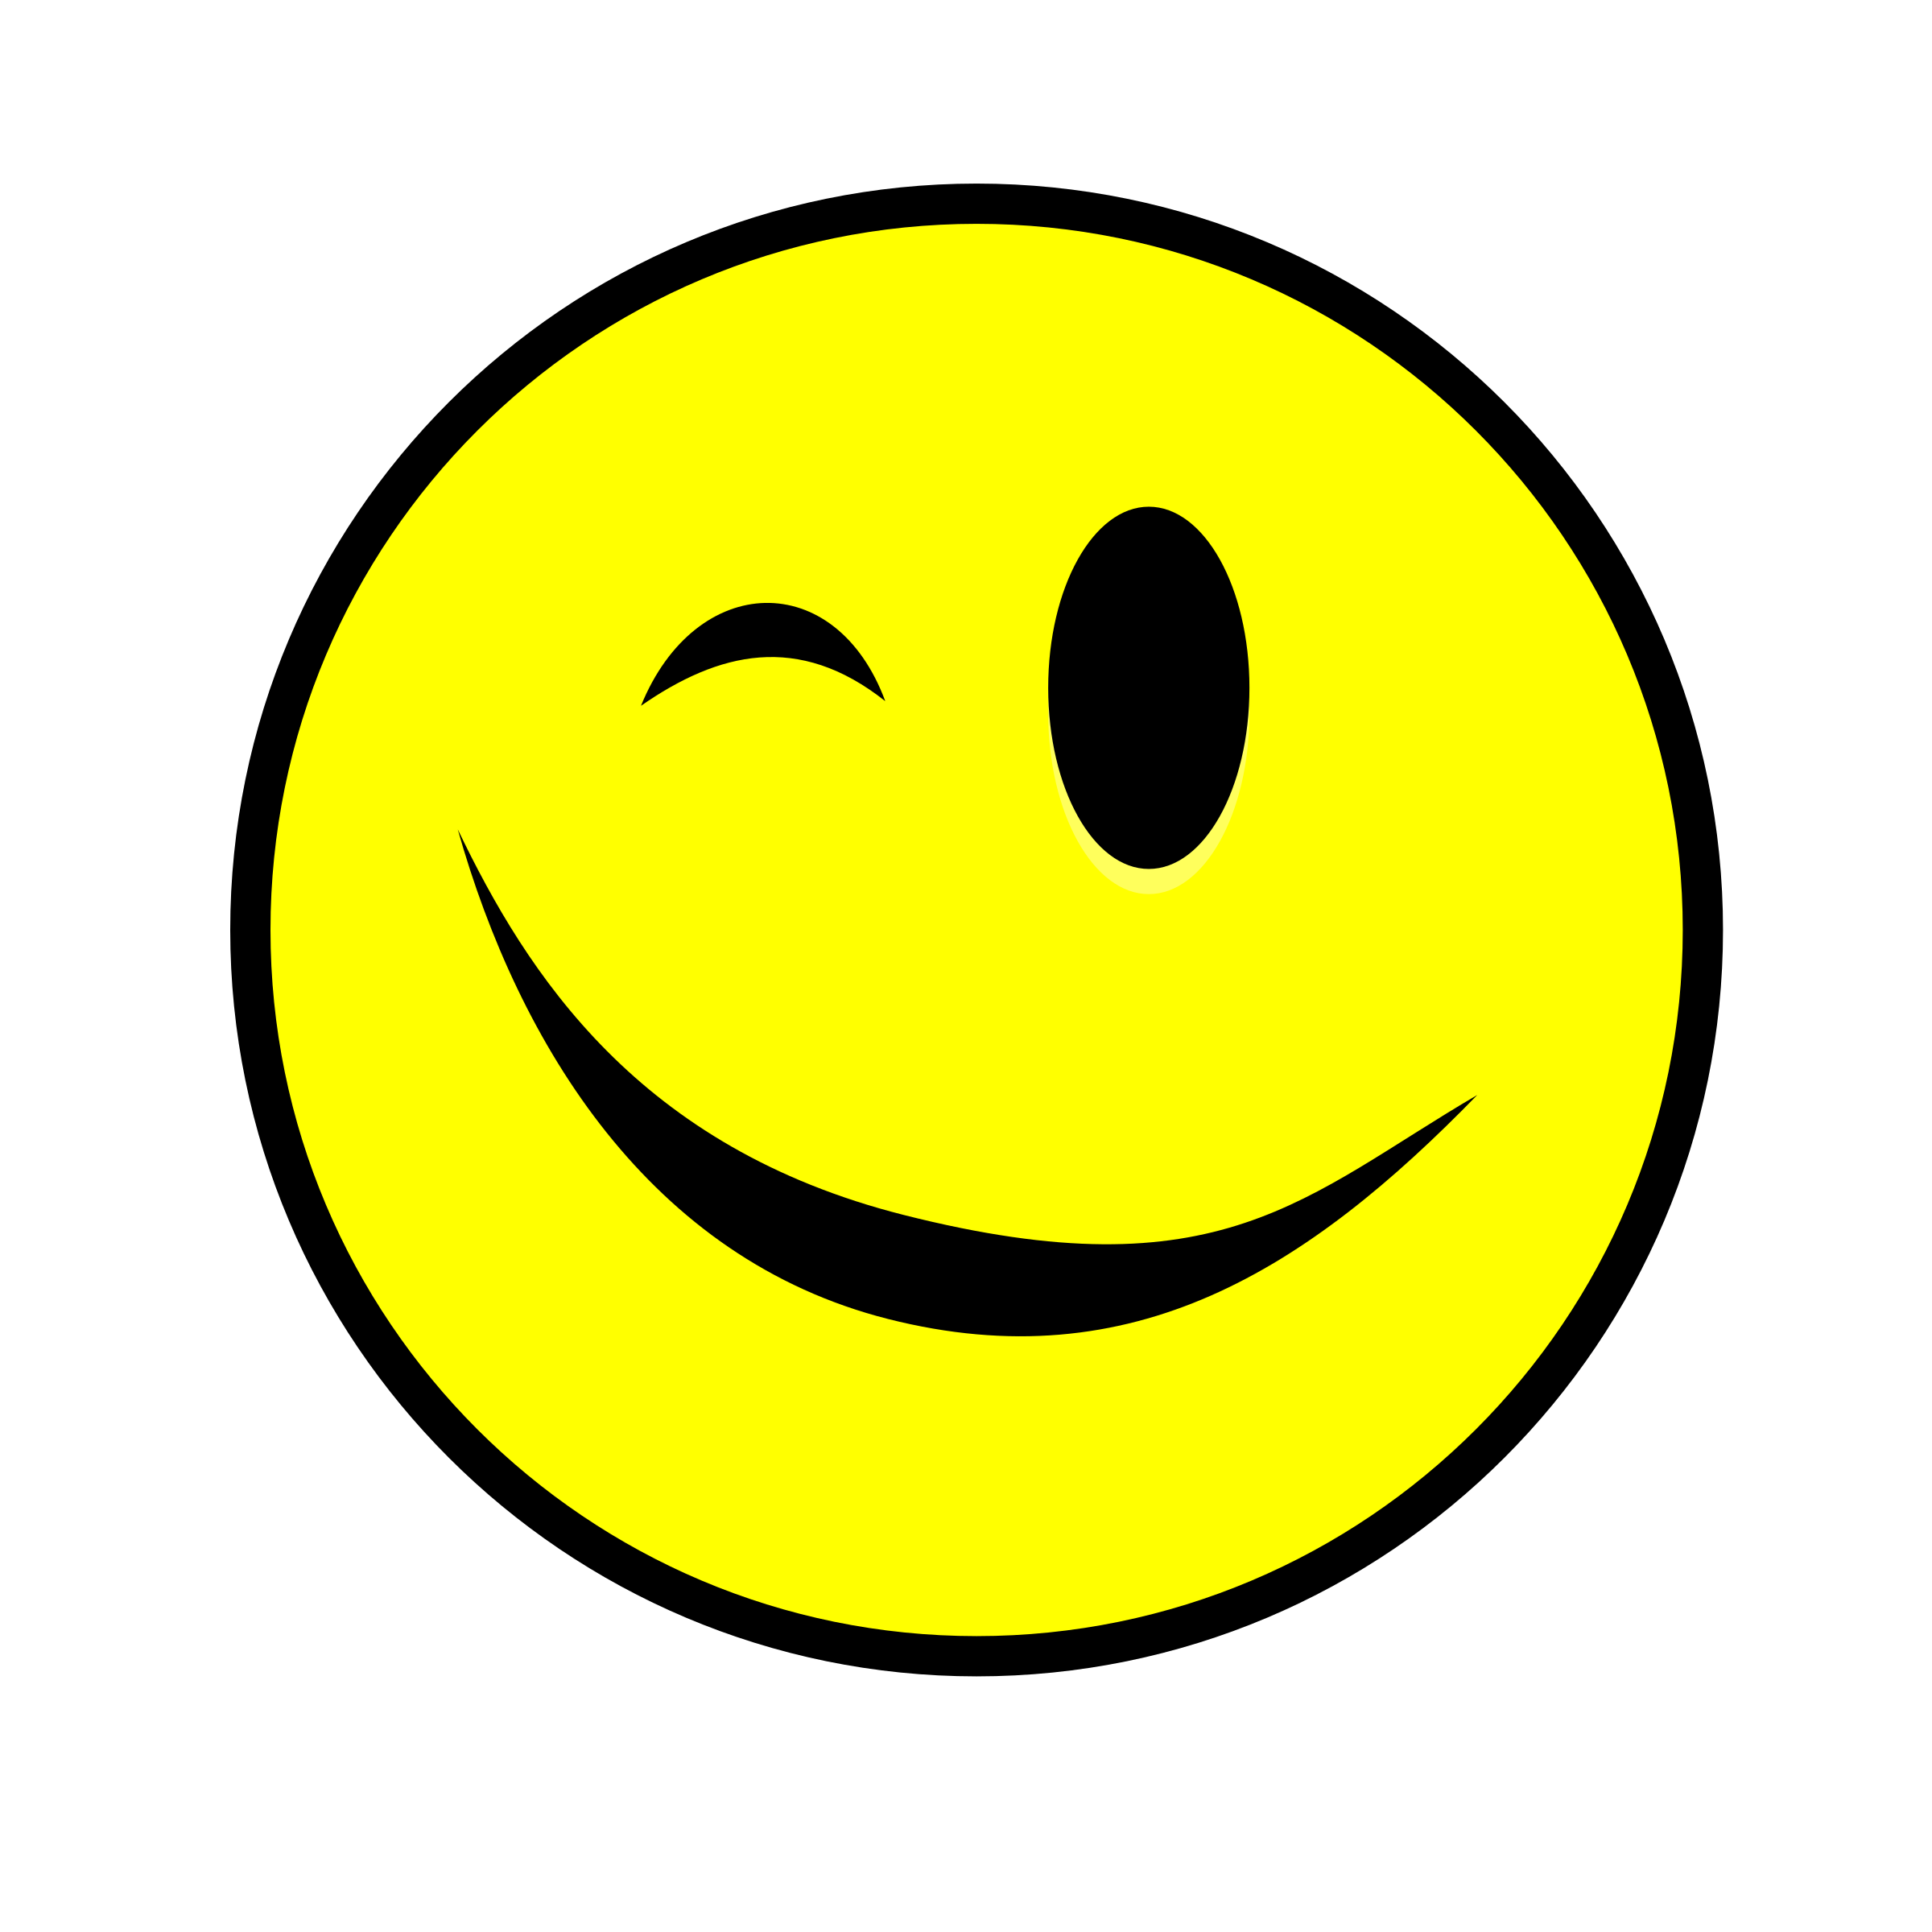 Winking Smiley yellow by Manuela.